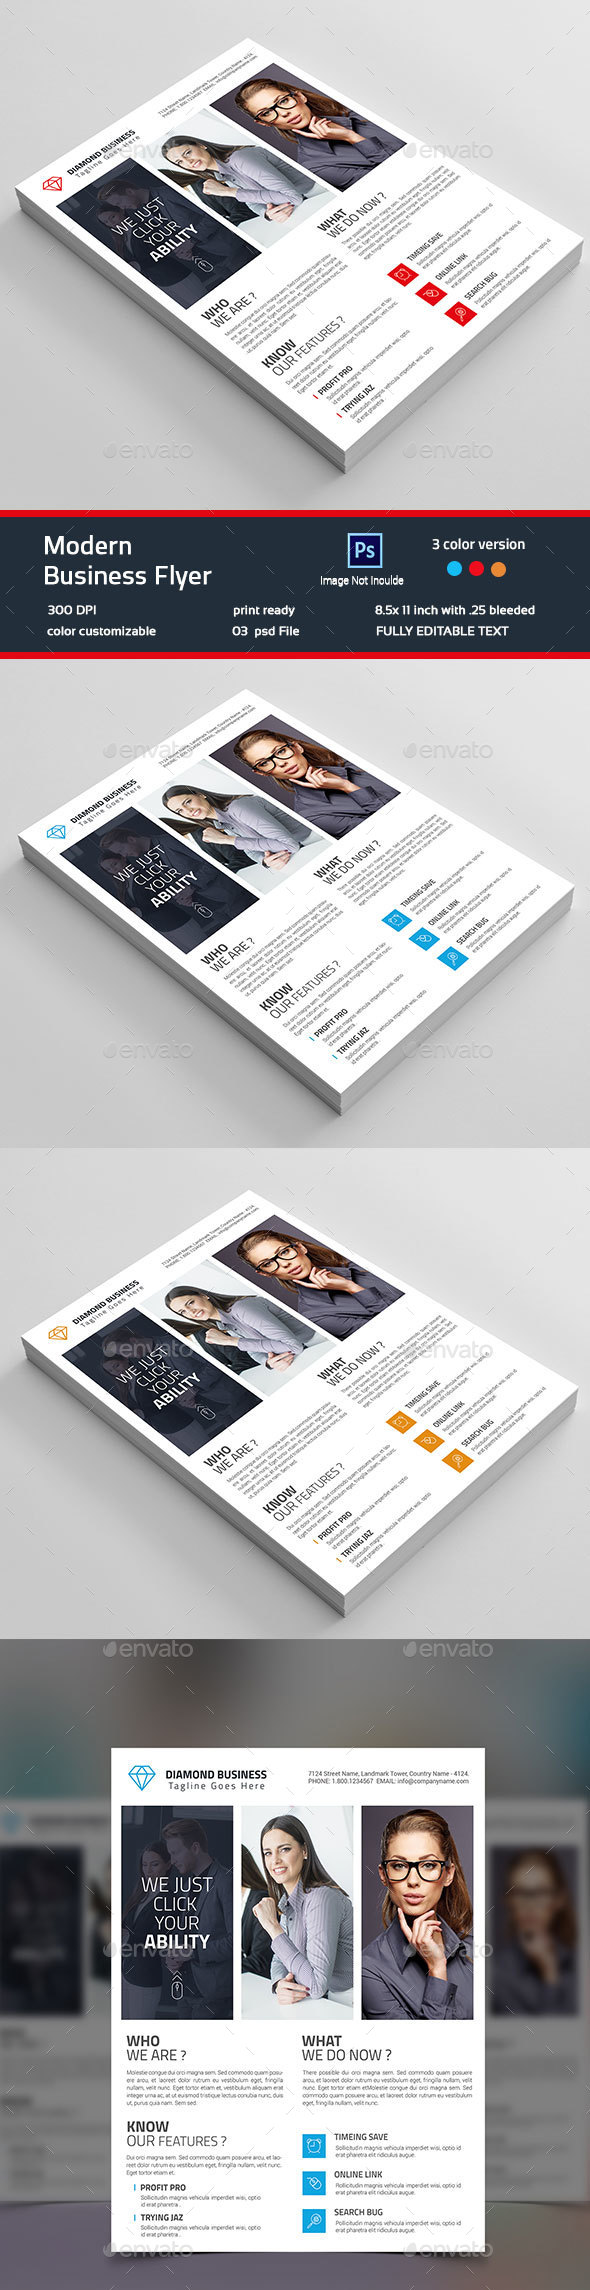 Modern  Business Flyer Template - Corporate Flyers